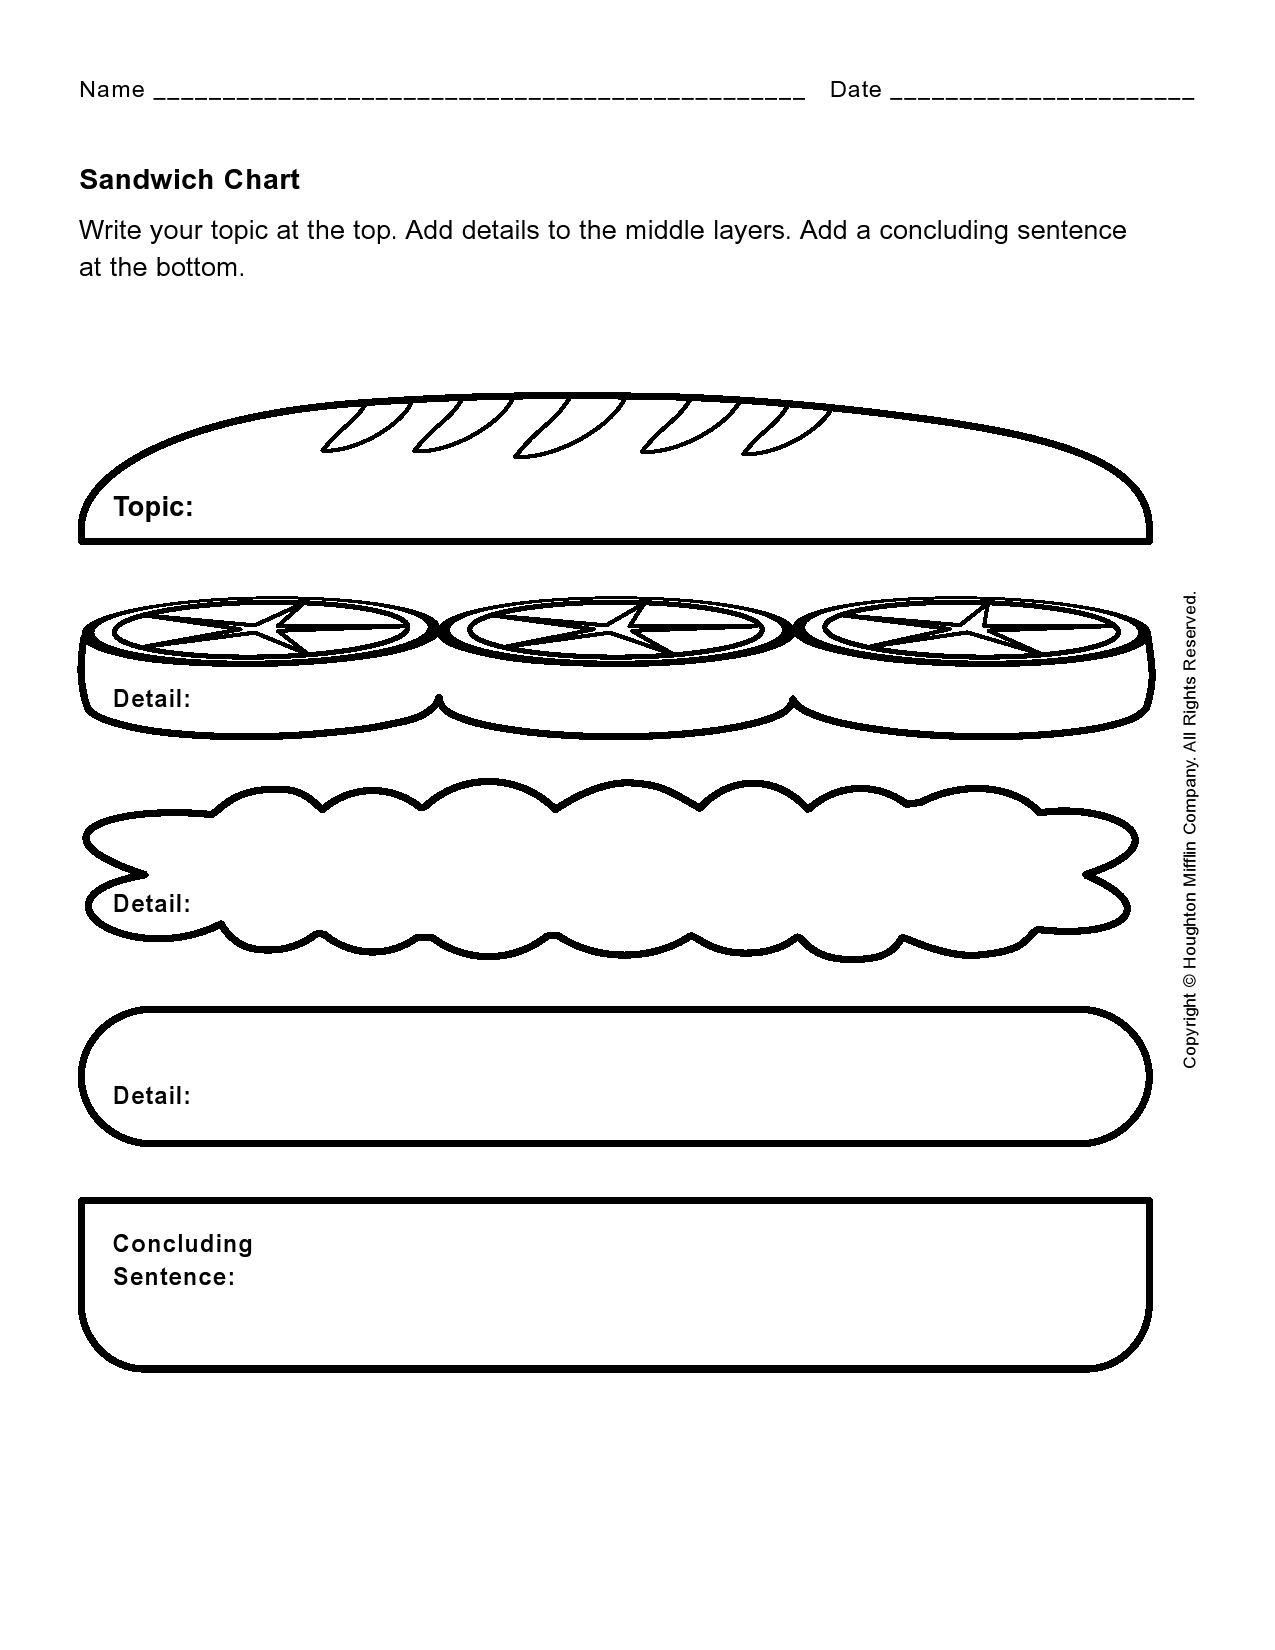 Sandwich Graphic Organizer For Putting Together Topic